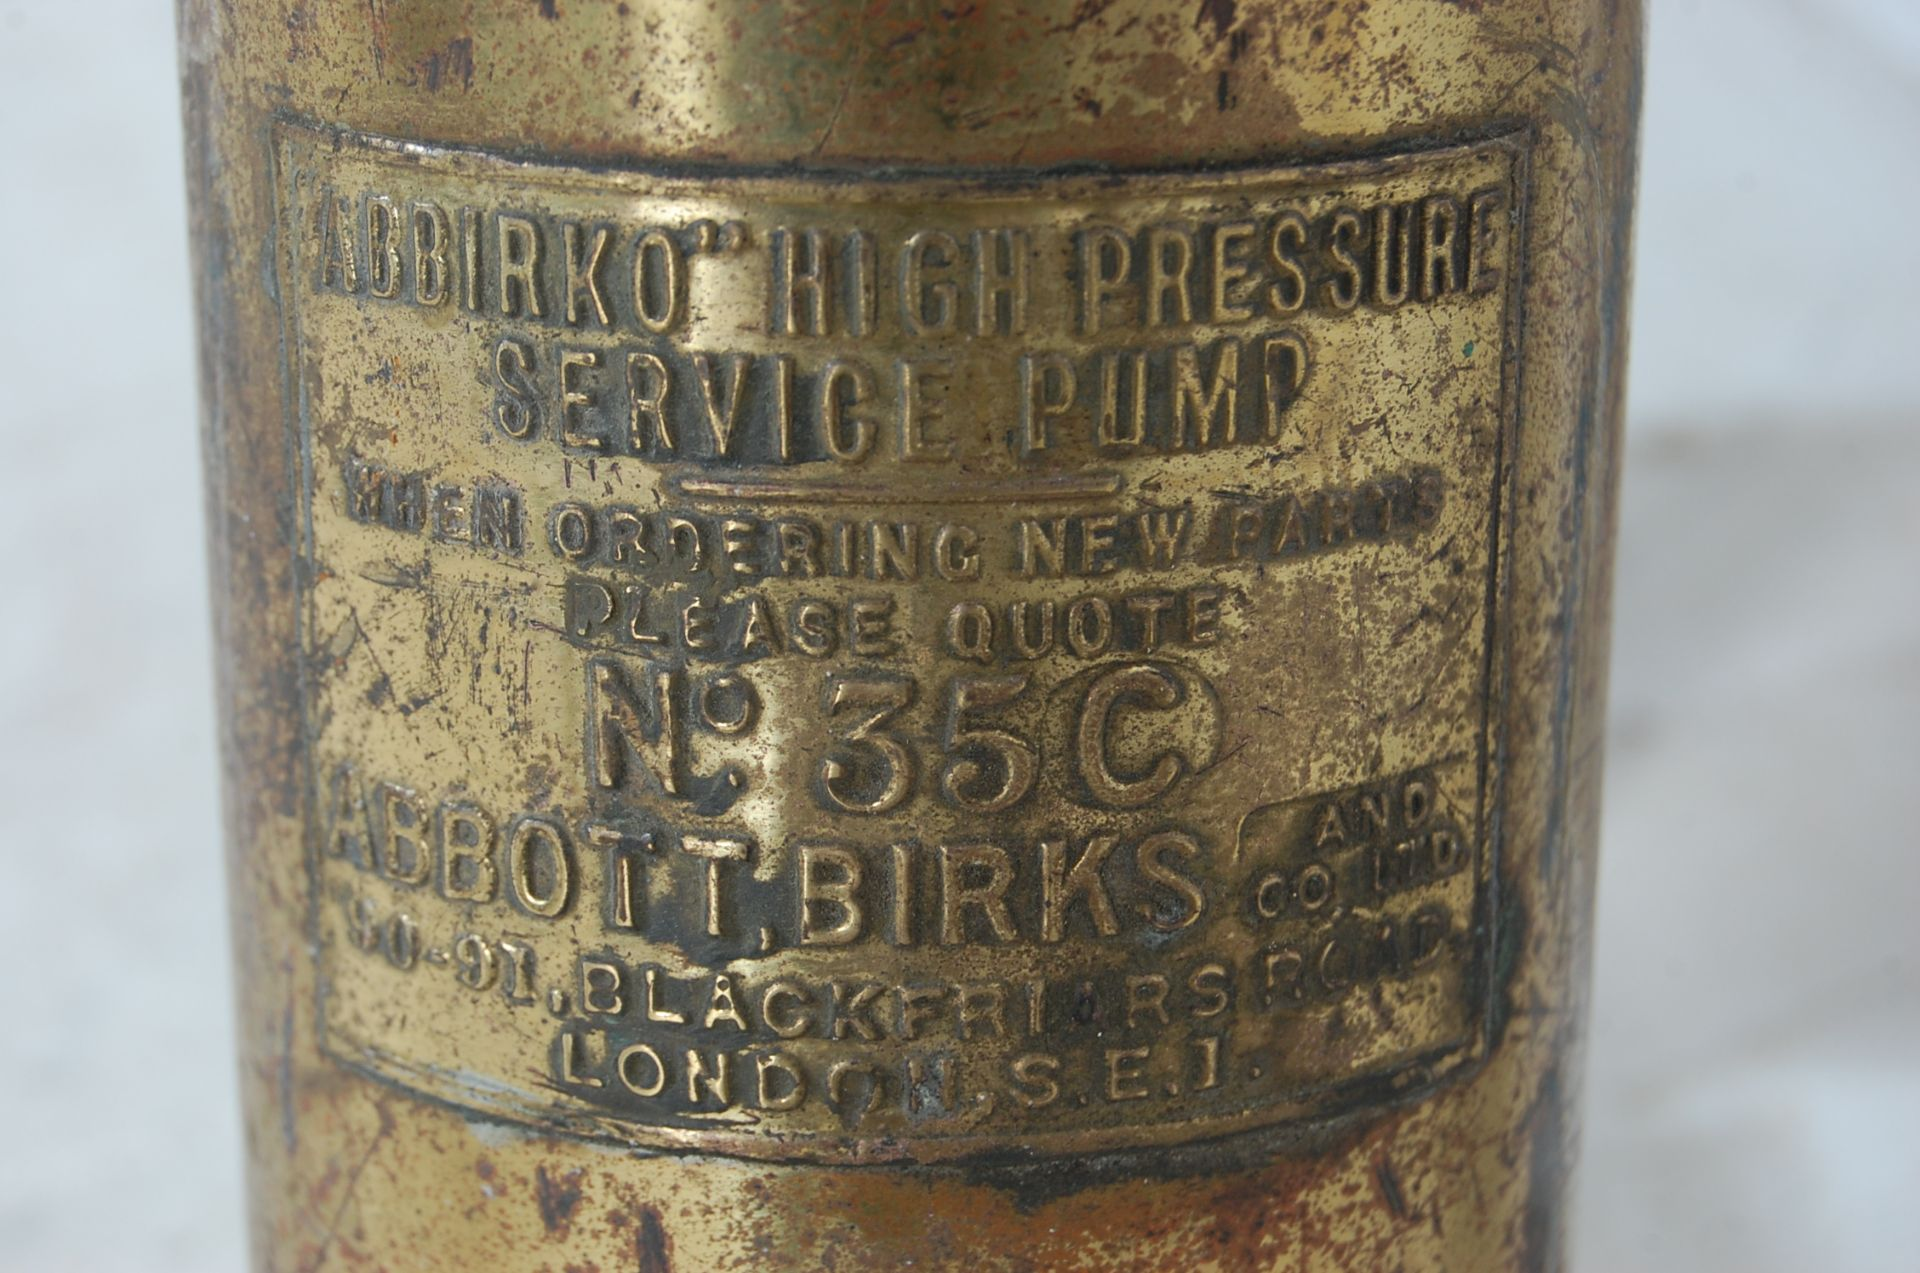 ABBIRKO PRESSURE SERVICE PUMP AND ANOTHER - Image 4 of 6